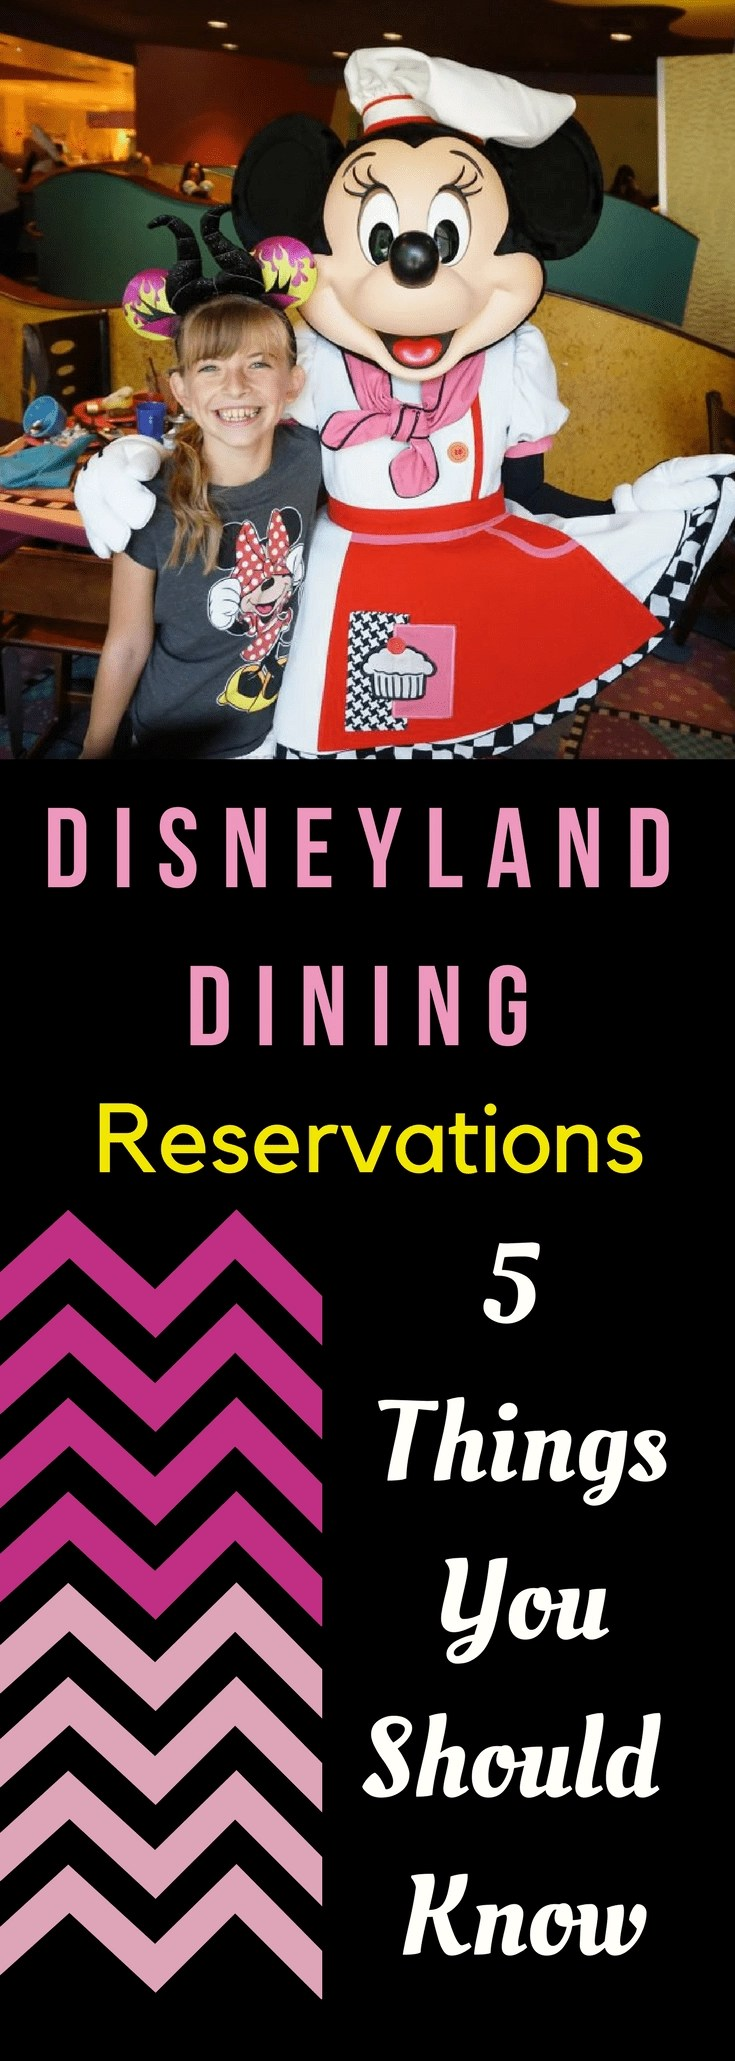 Disneyland Dining Reservations 5 things you should know! If you are heading to Disneyland making dining reservations might be last on your mind, but if you plan ahead, your Disney experience will be so much better. Here are 5 things you should know about Disneyland Dining Reservations! #disney #disneydining